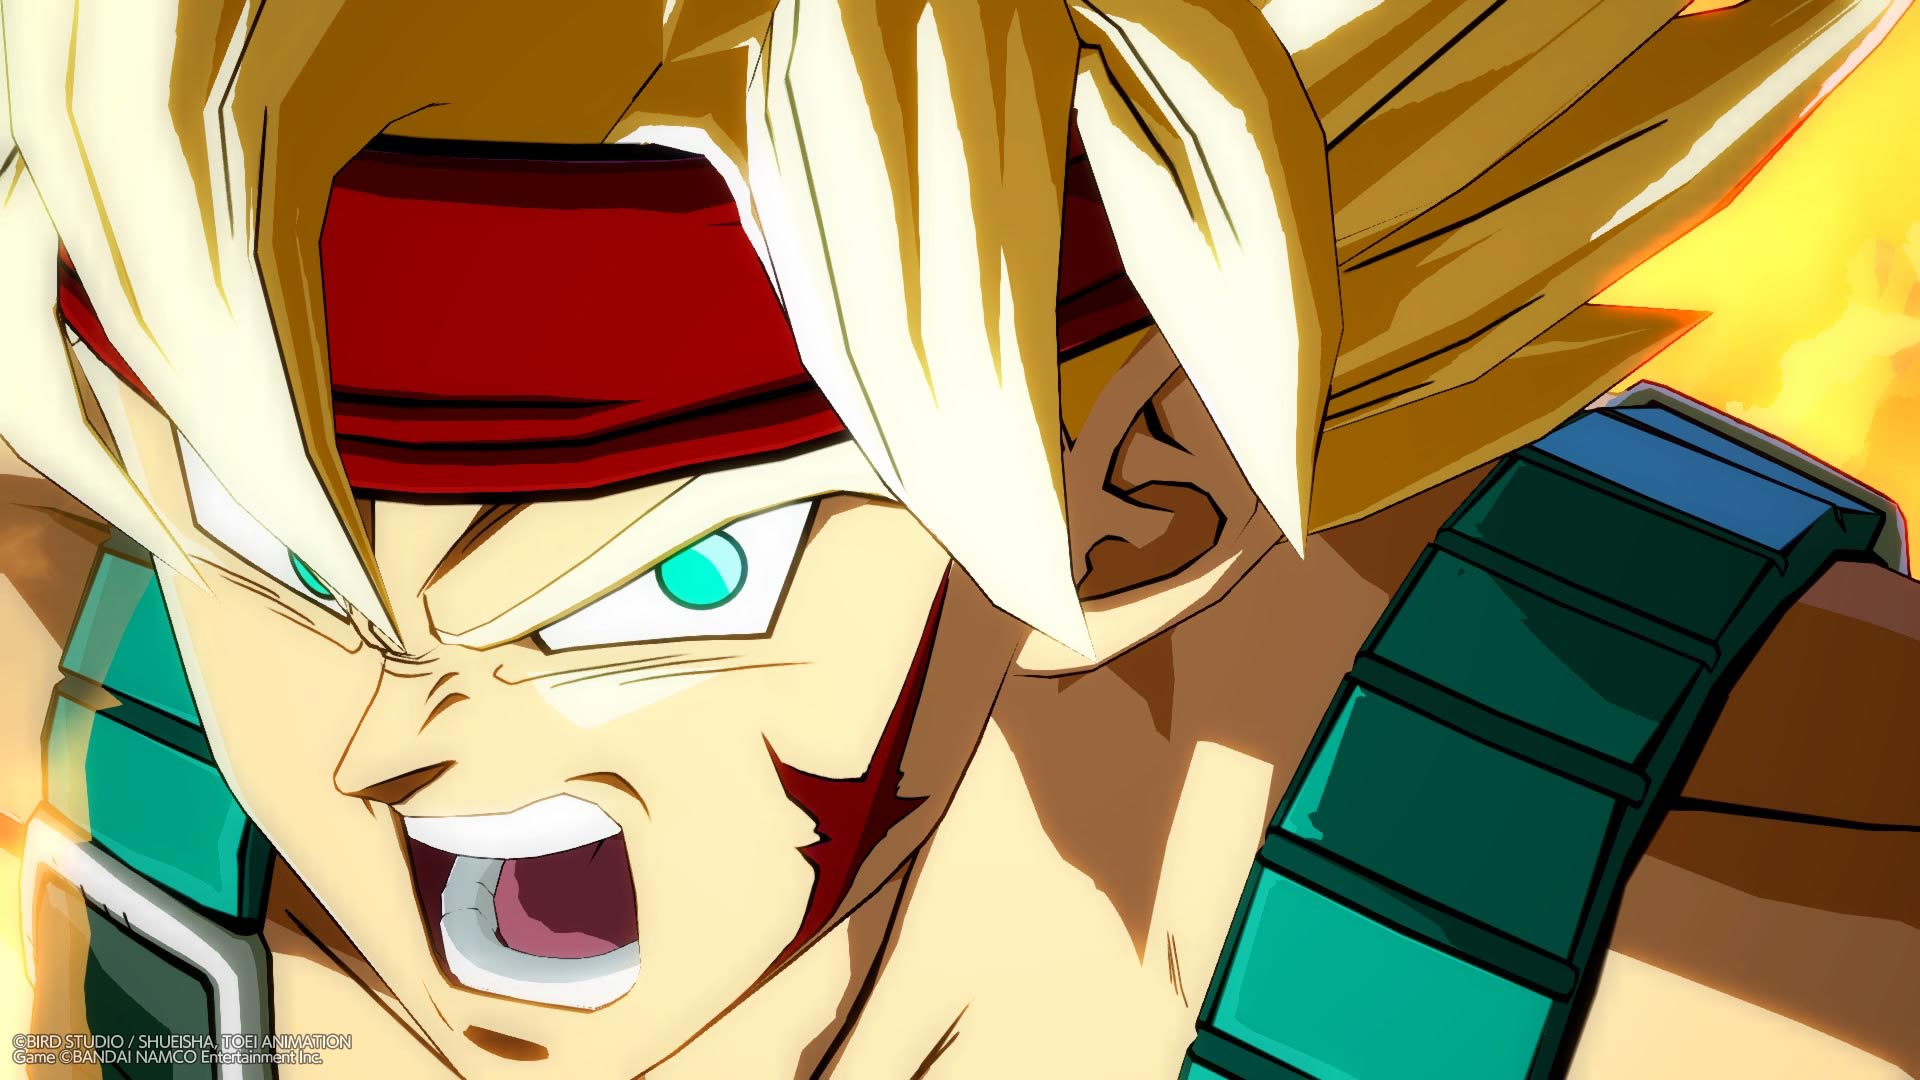 Broly and Bardock screenshots in Dragon Ball FighterZ 5 out of 12 image gallery